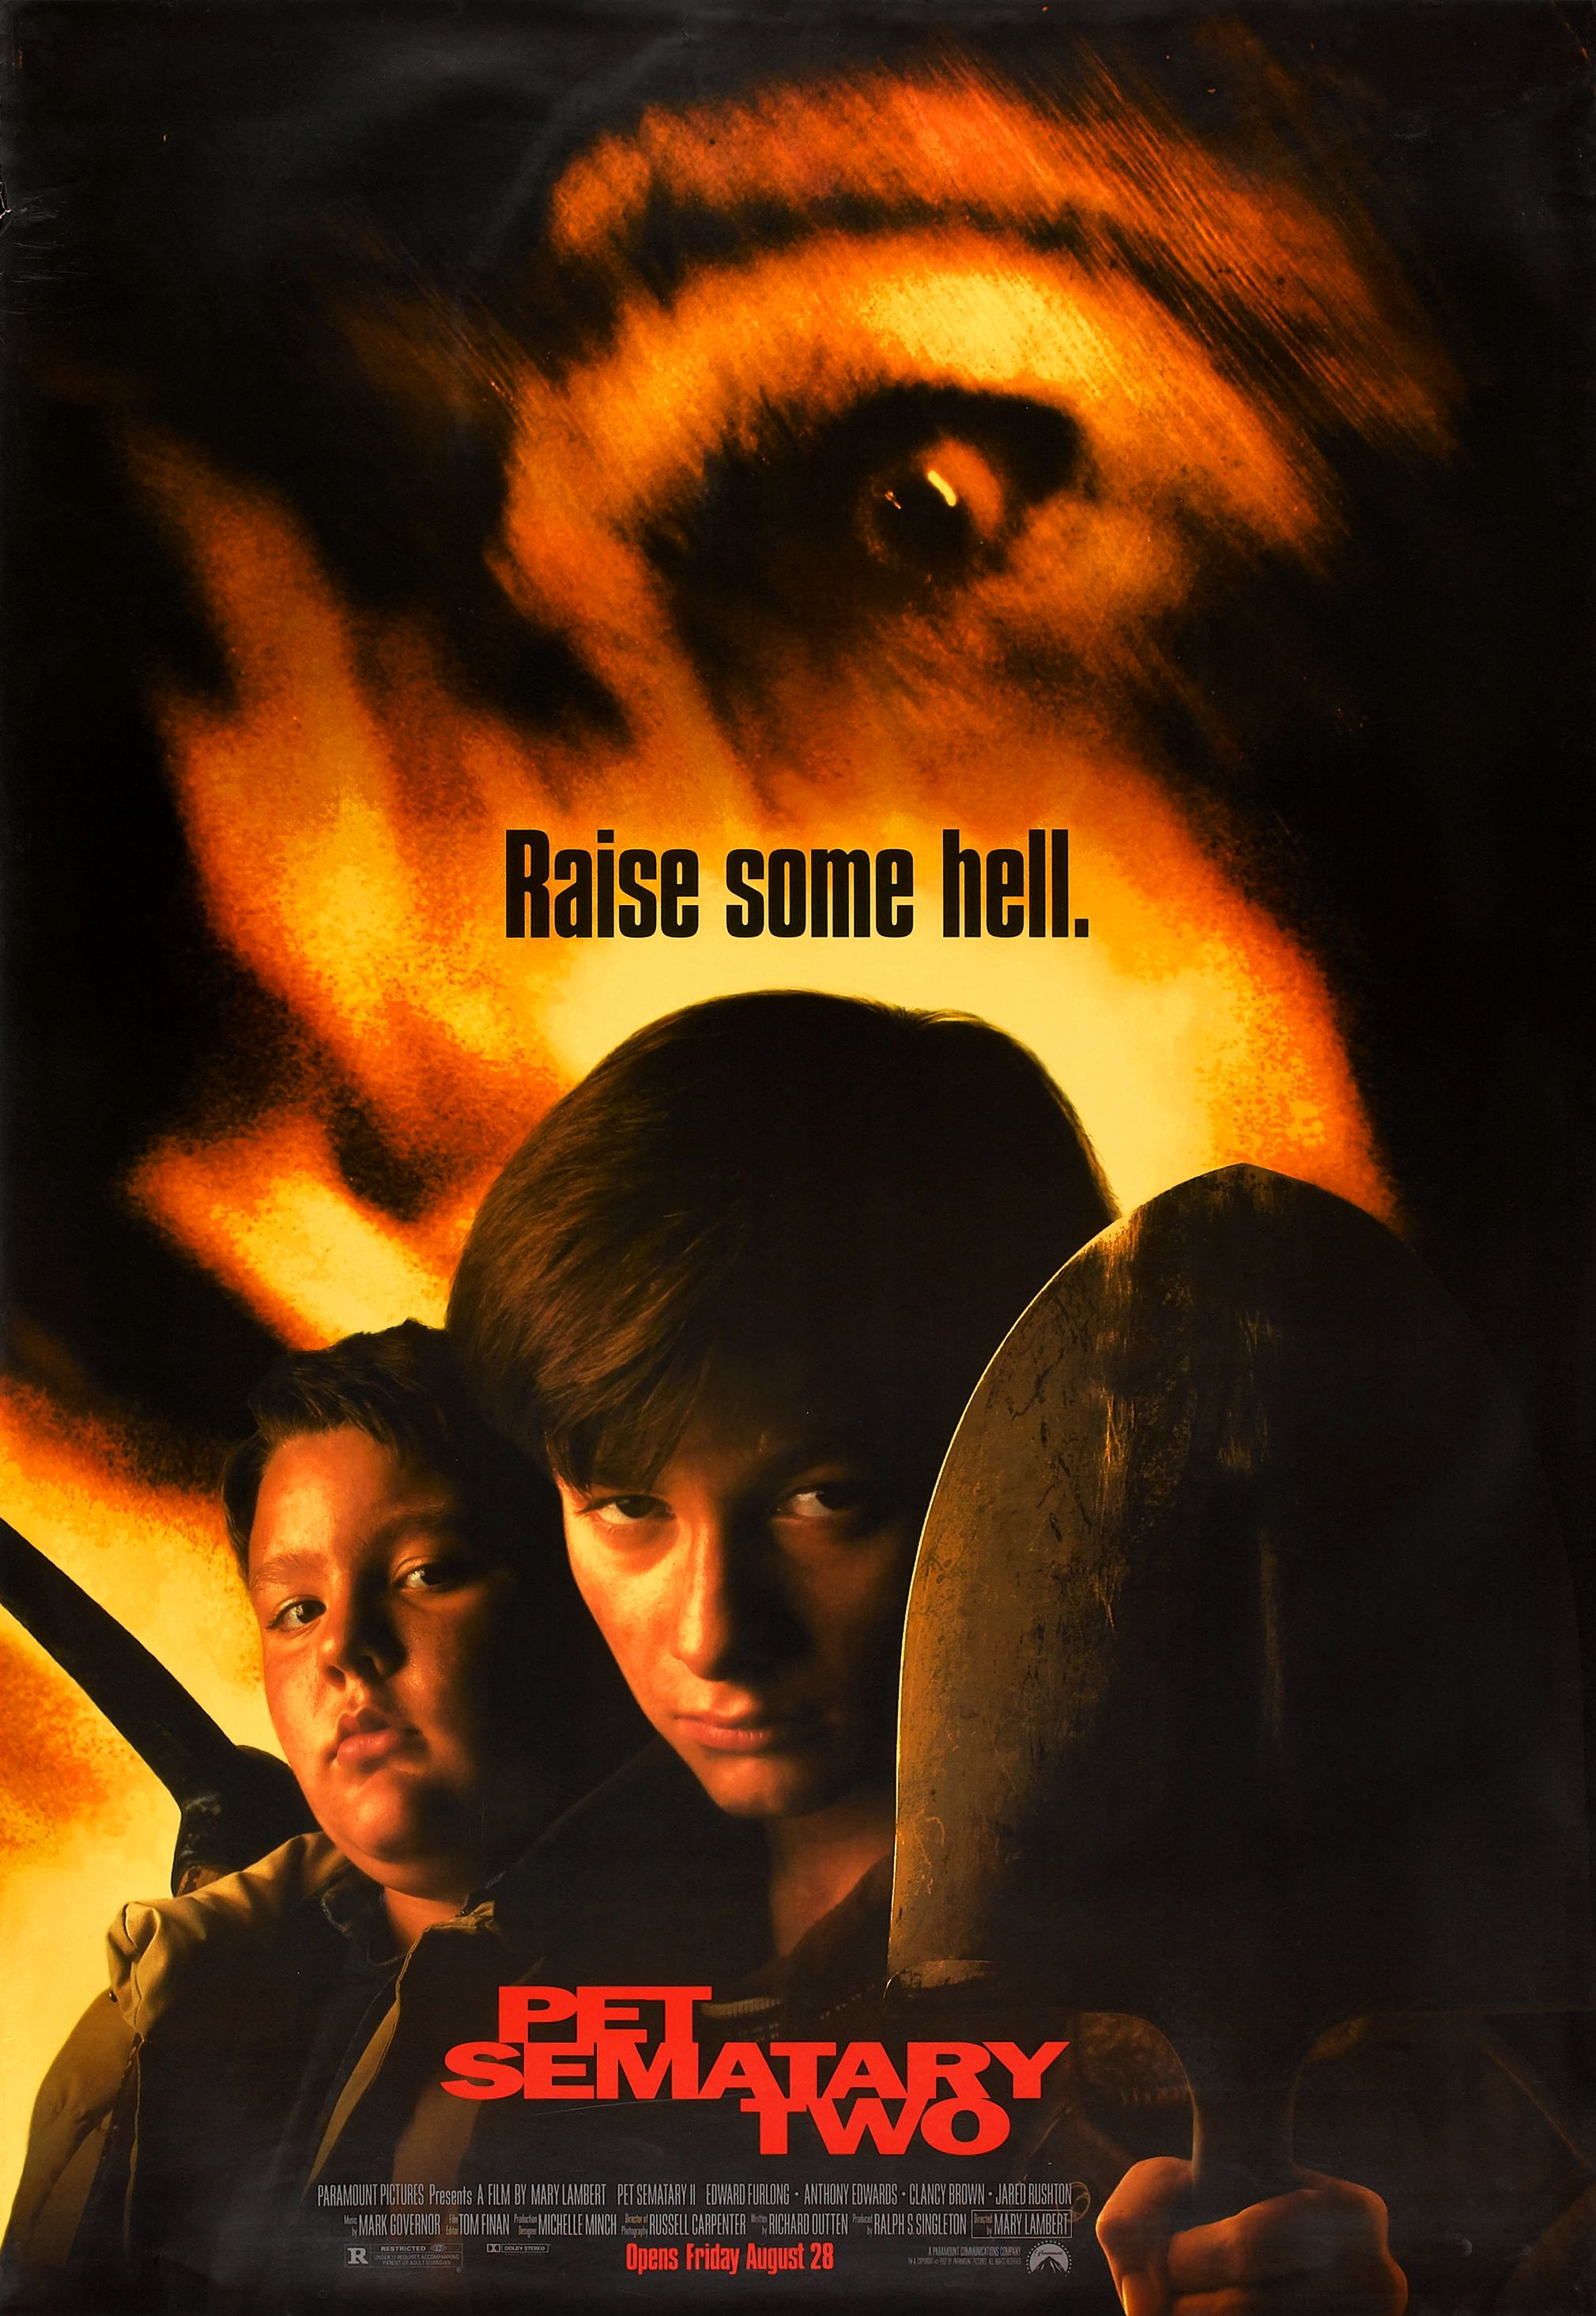 Pet Sematary II (1992) Technical Specifications